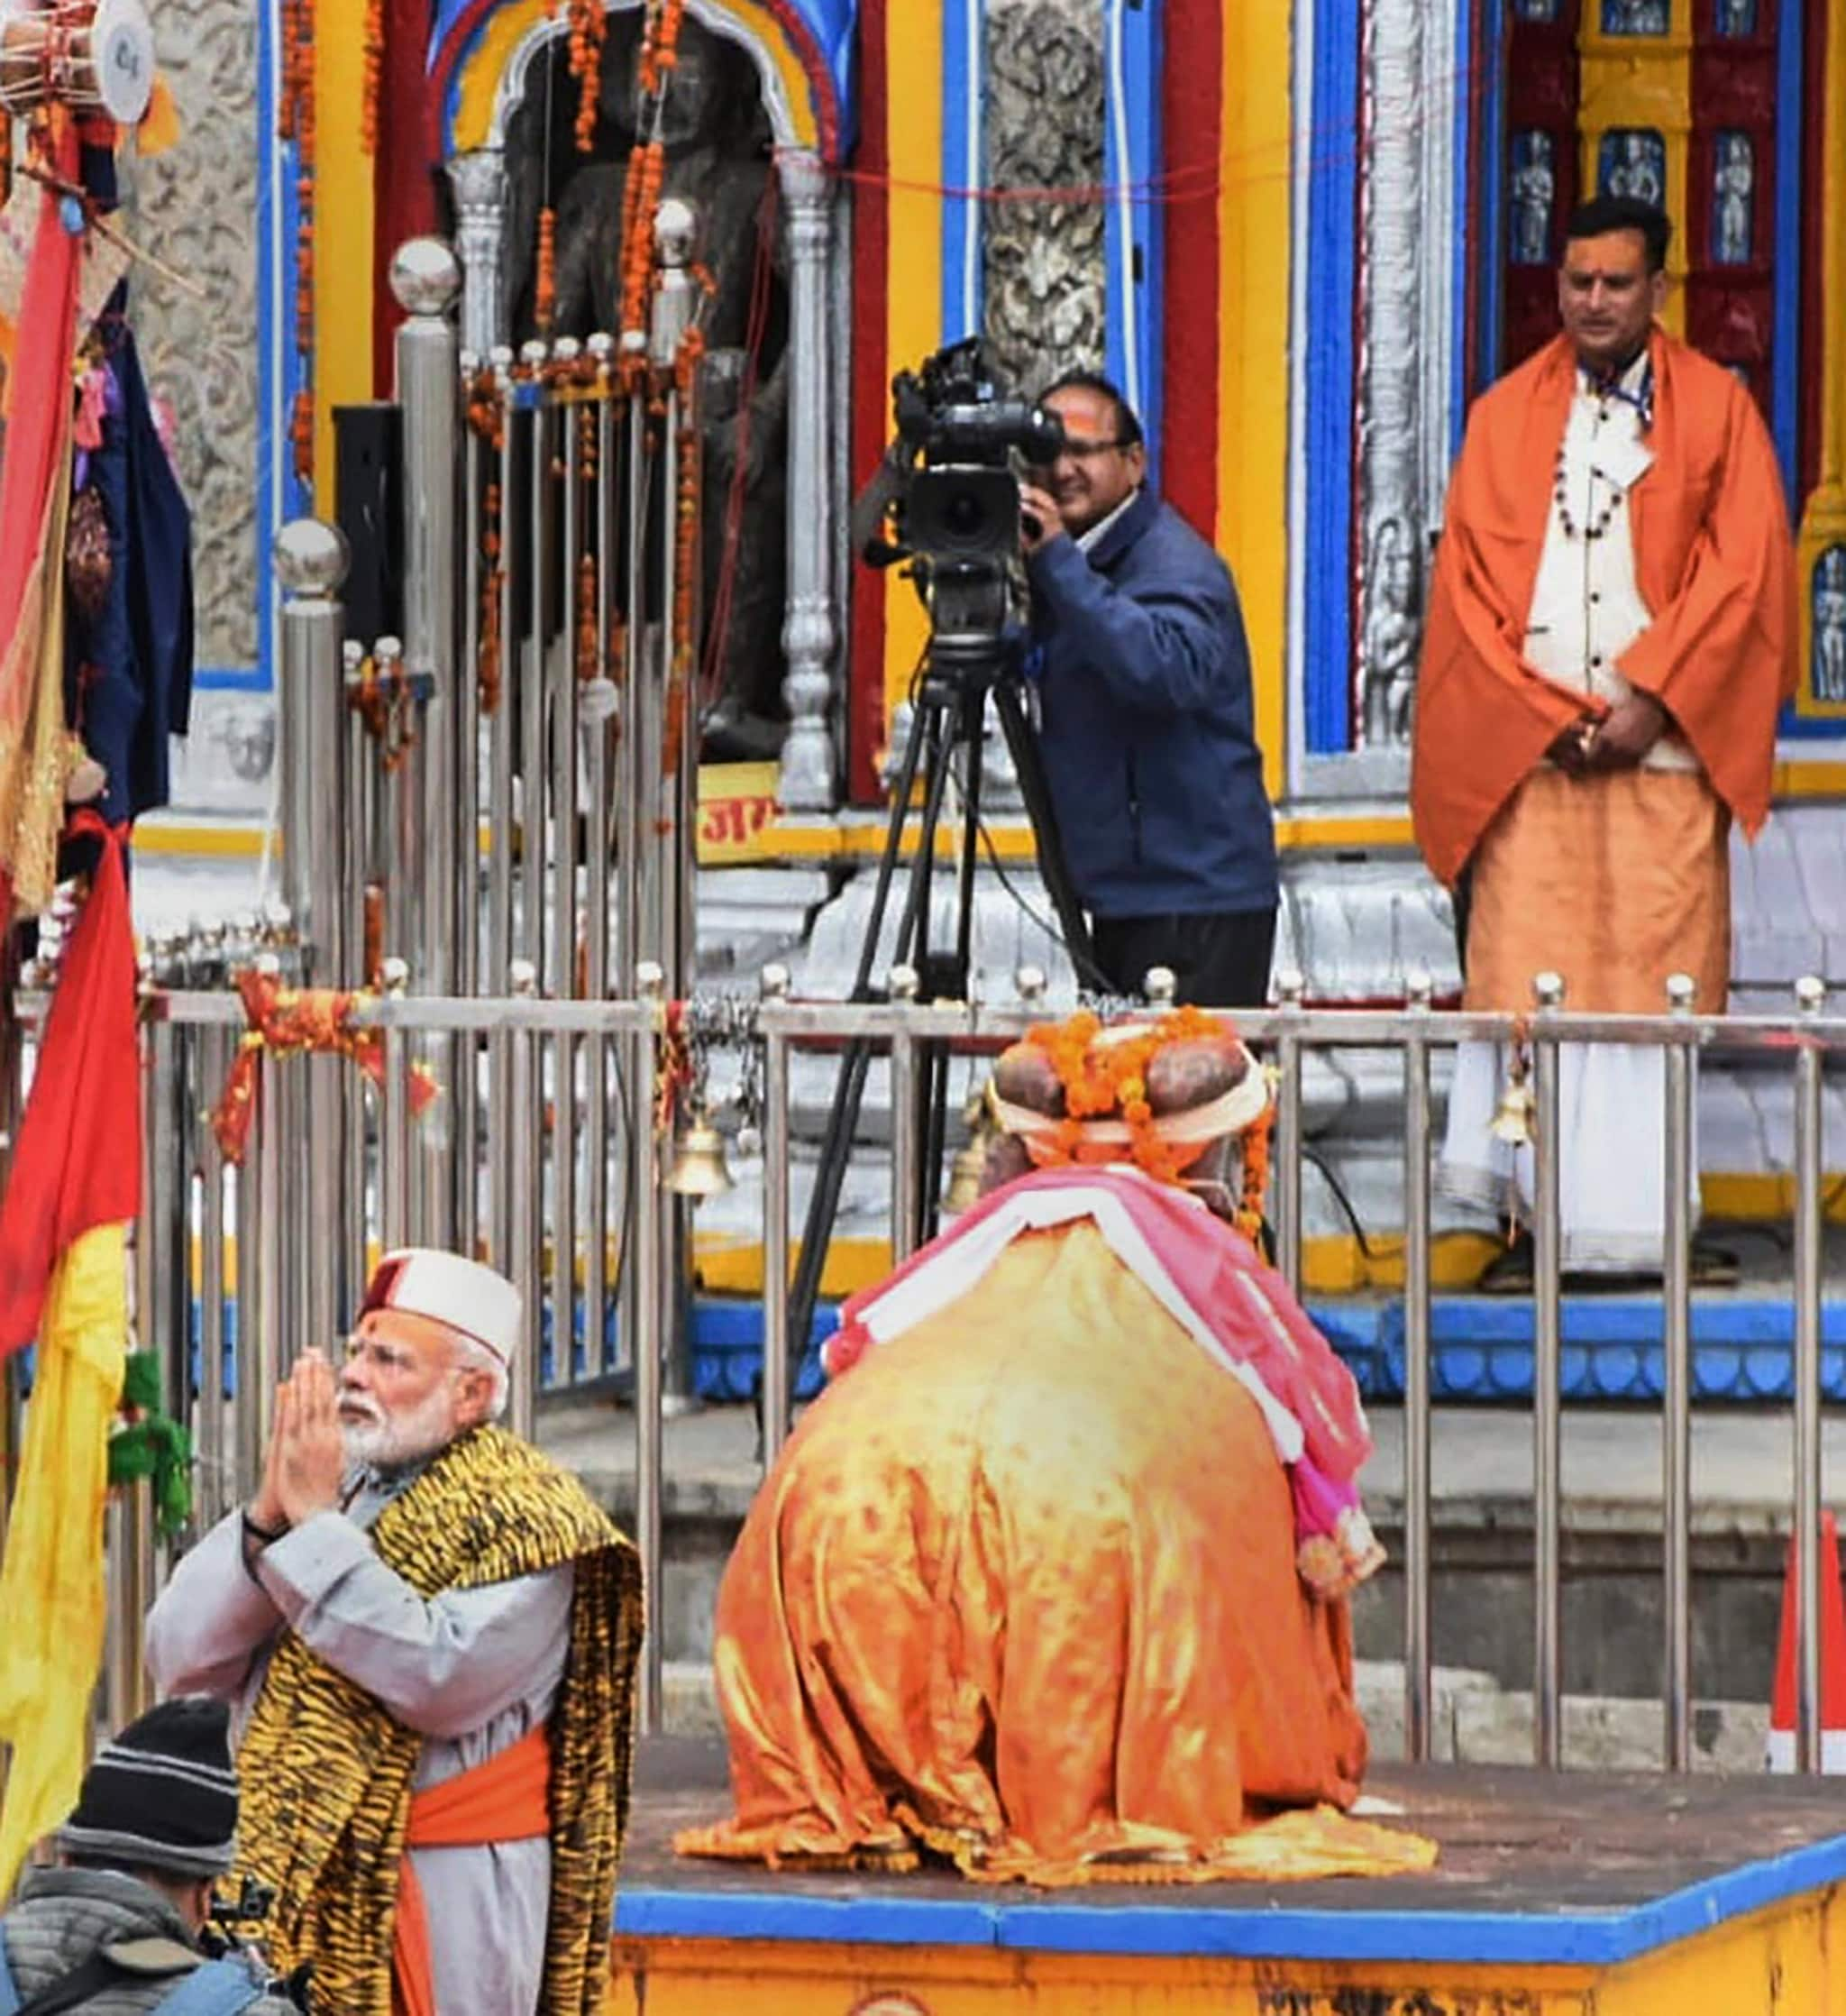 Kedarnath: Prime Minister Narendra Modi arrives at Kedarnath, for this two day pilgrimage to Himalayan shrines, in Rudraprayag district, Saturday, May 18, 2019. PM Modi will visit Badrinath on Sunday. (PTI Photo)(PTI5_18_2019_000051B)